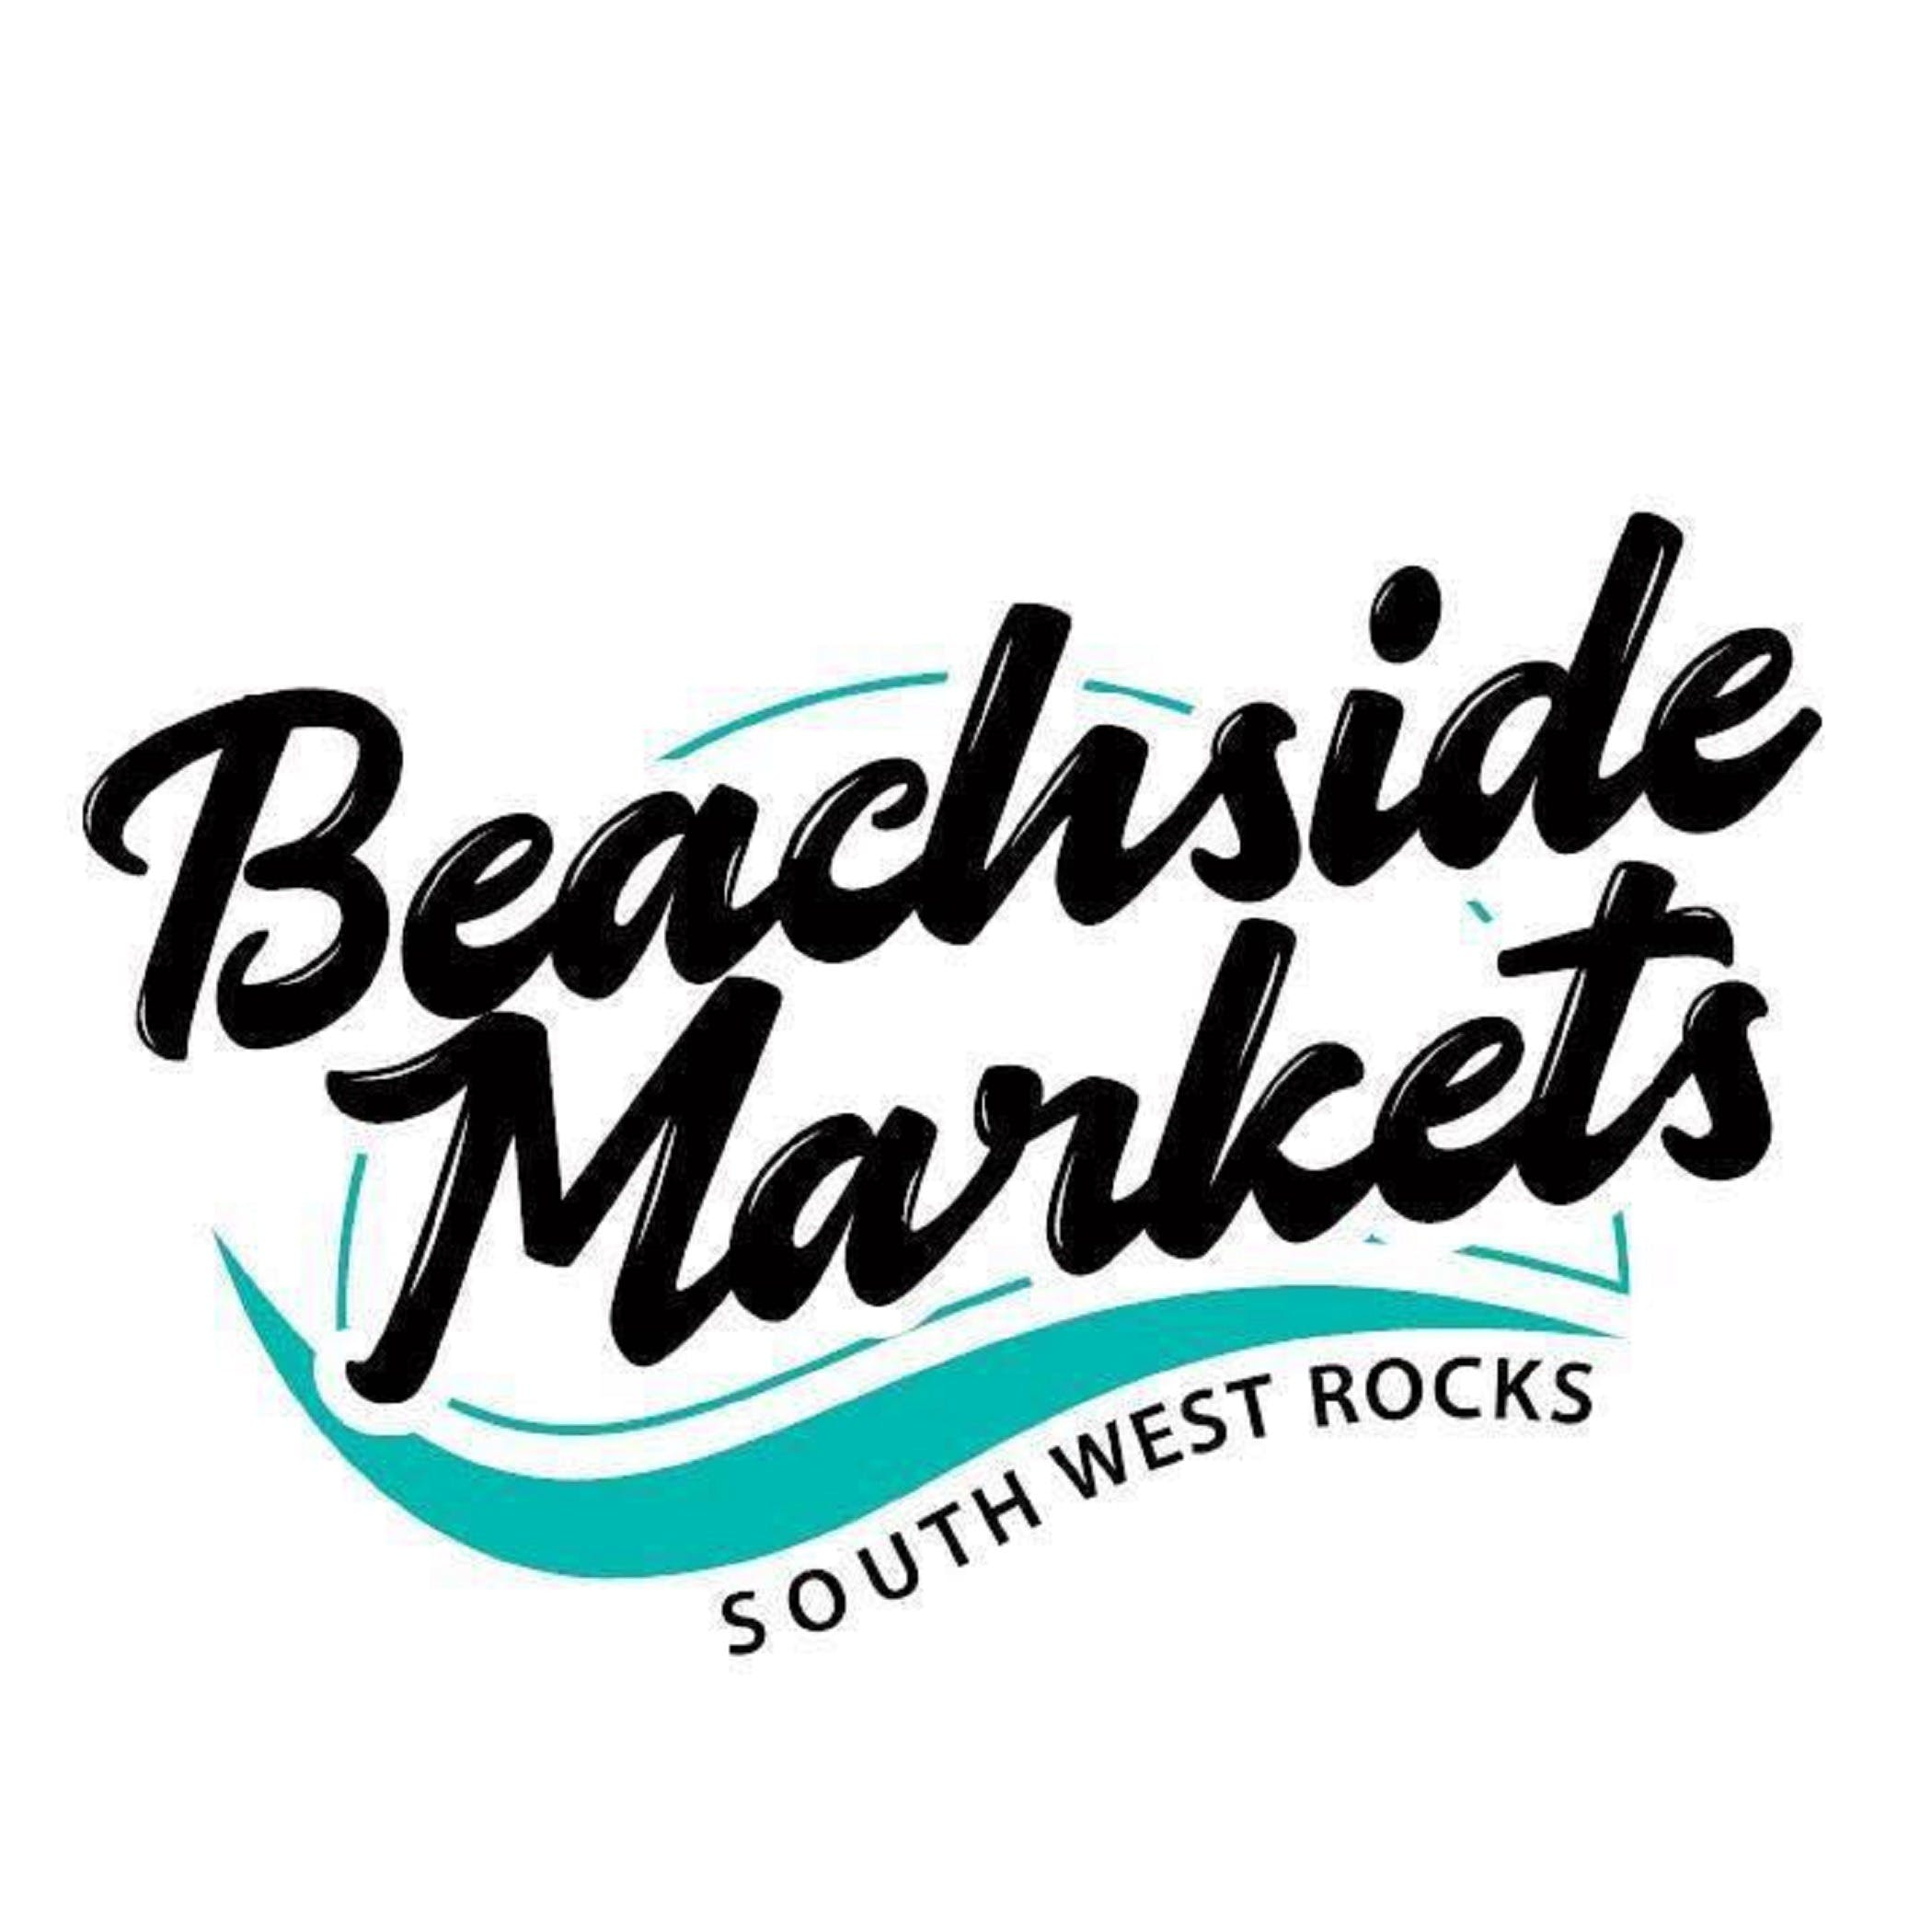 Beachside Markets South West Rocks - VIC Tourism